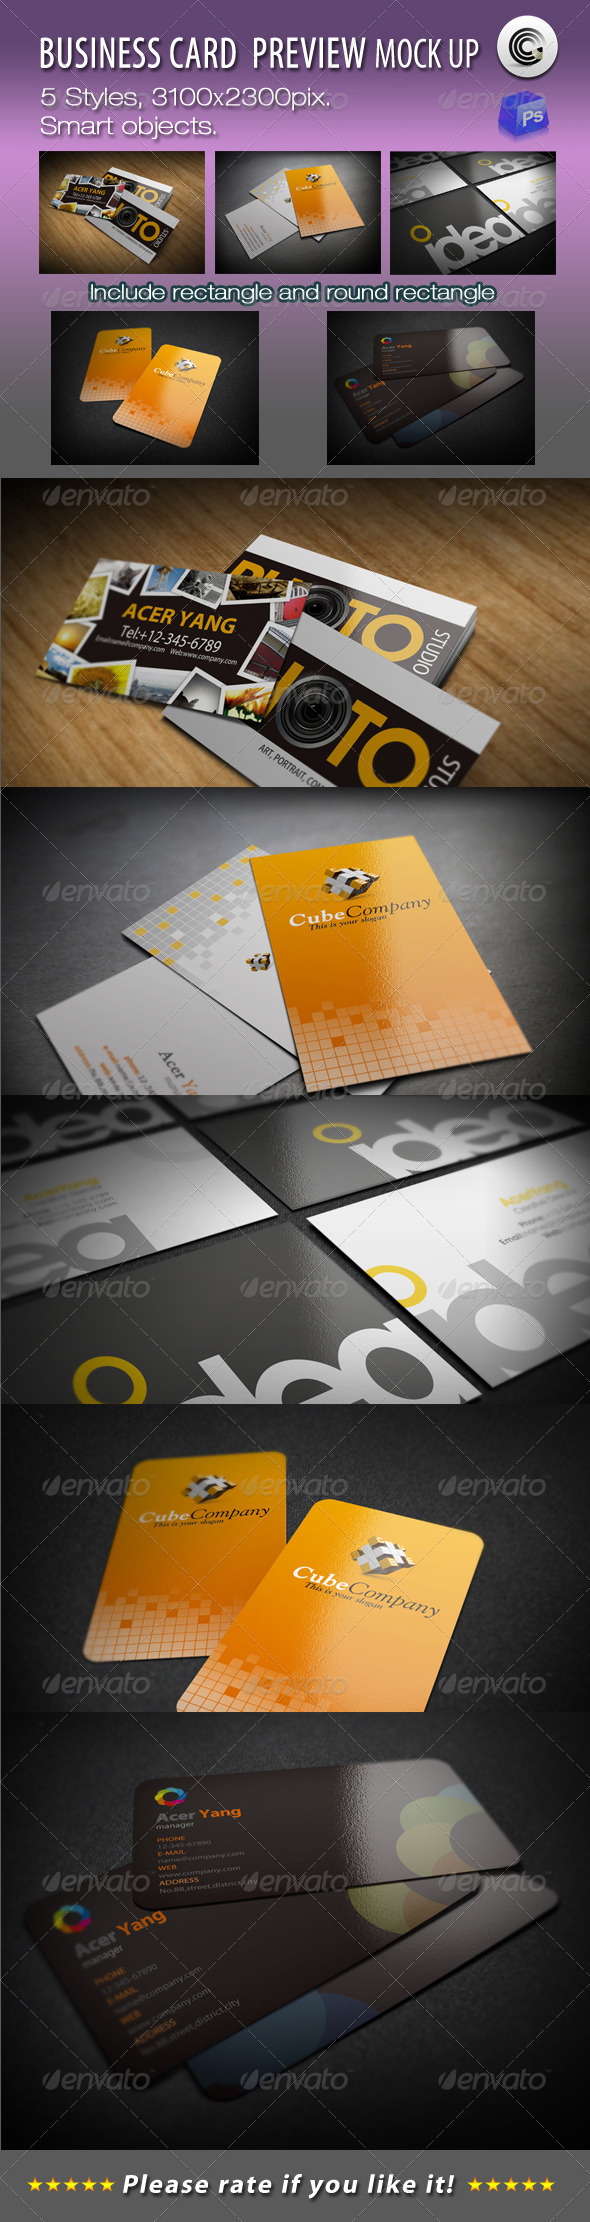 5 Styles Business Card Preview Mock-ups